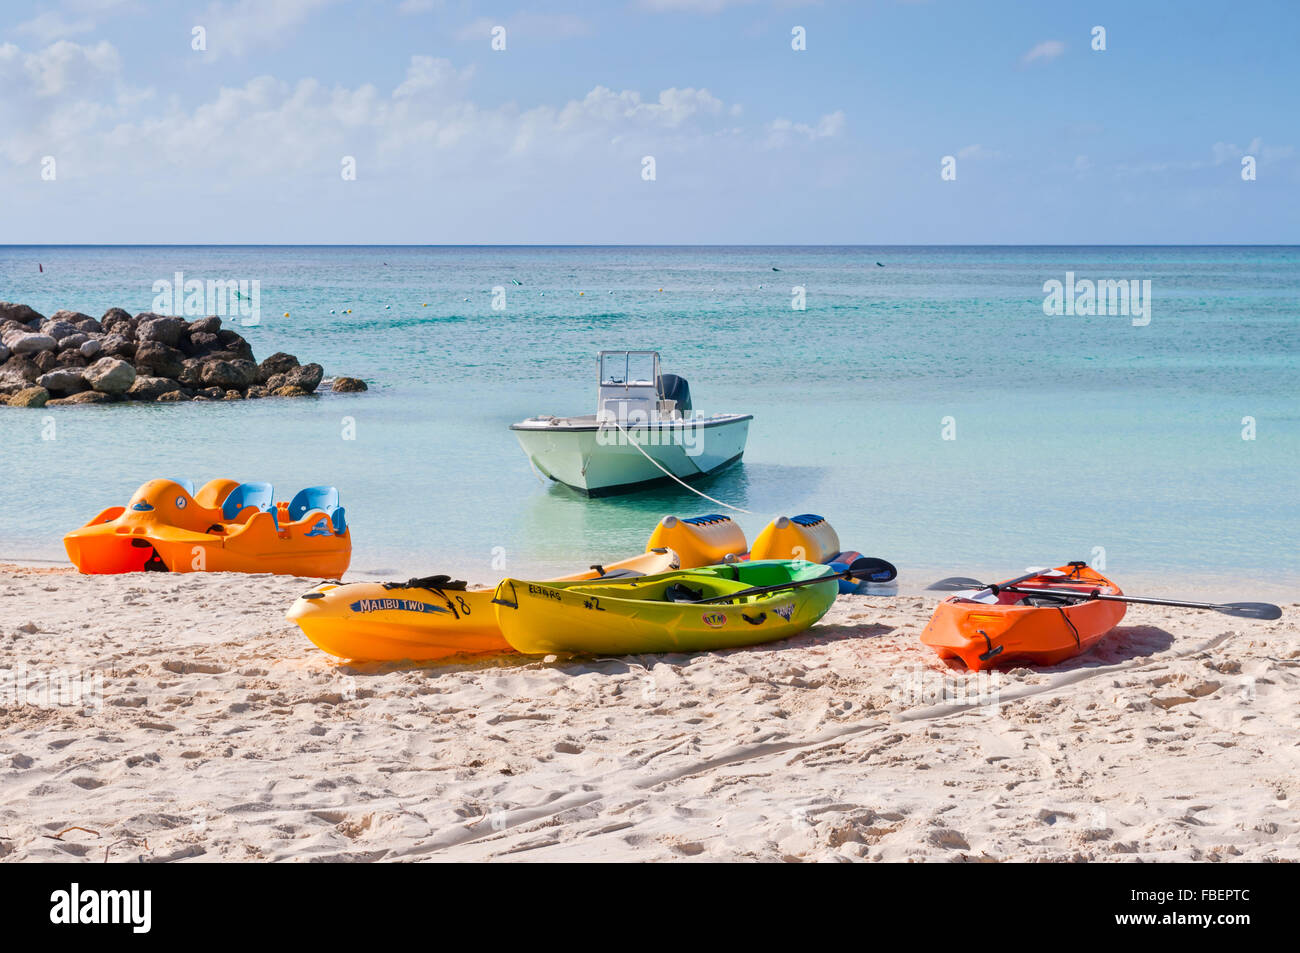 Water sport equipments on the Princess Cays beach, Eleuthera in the Bahamas on December 7 - Stock Image